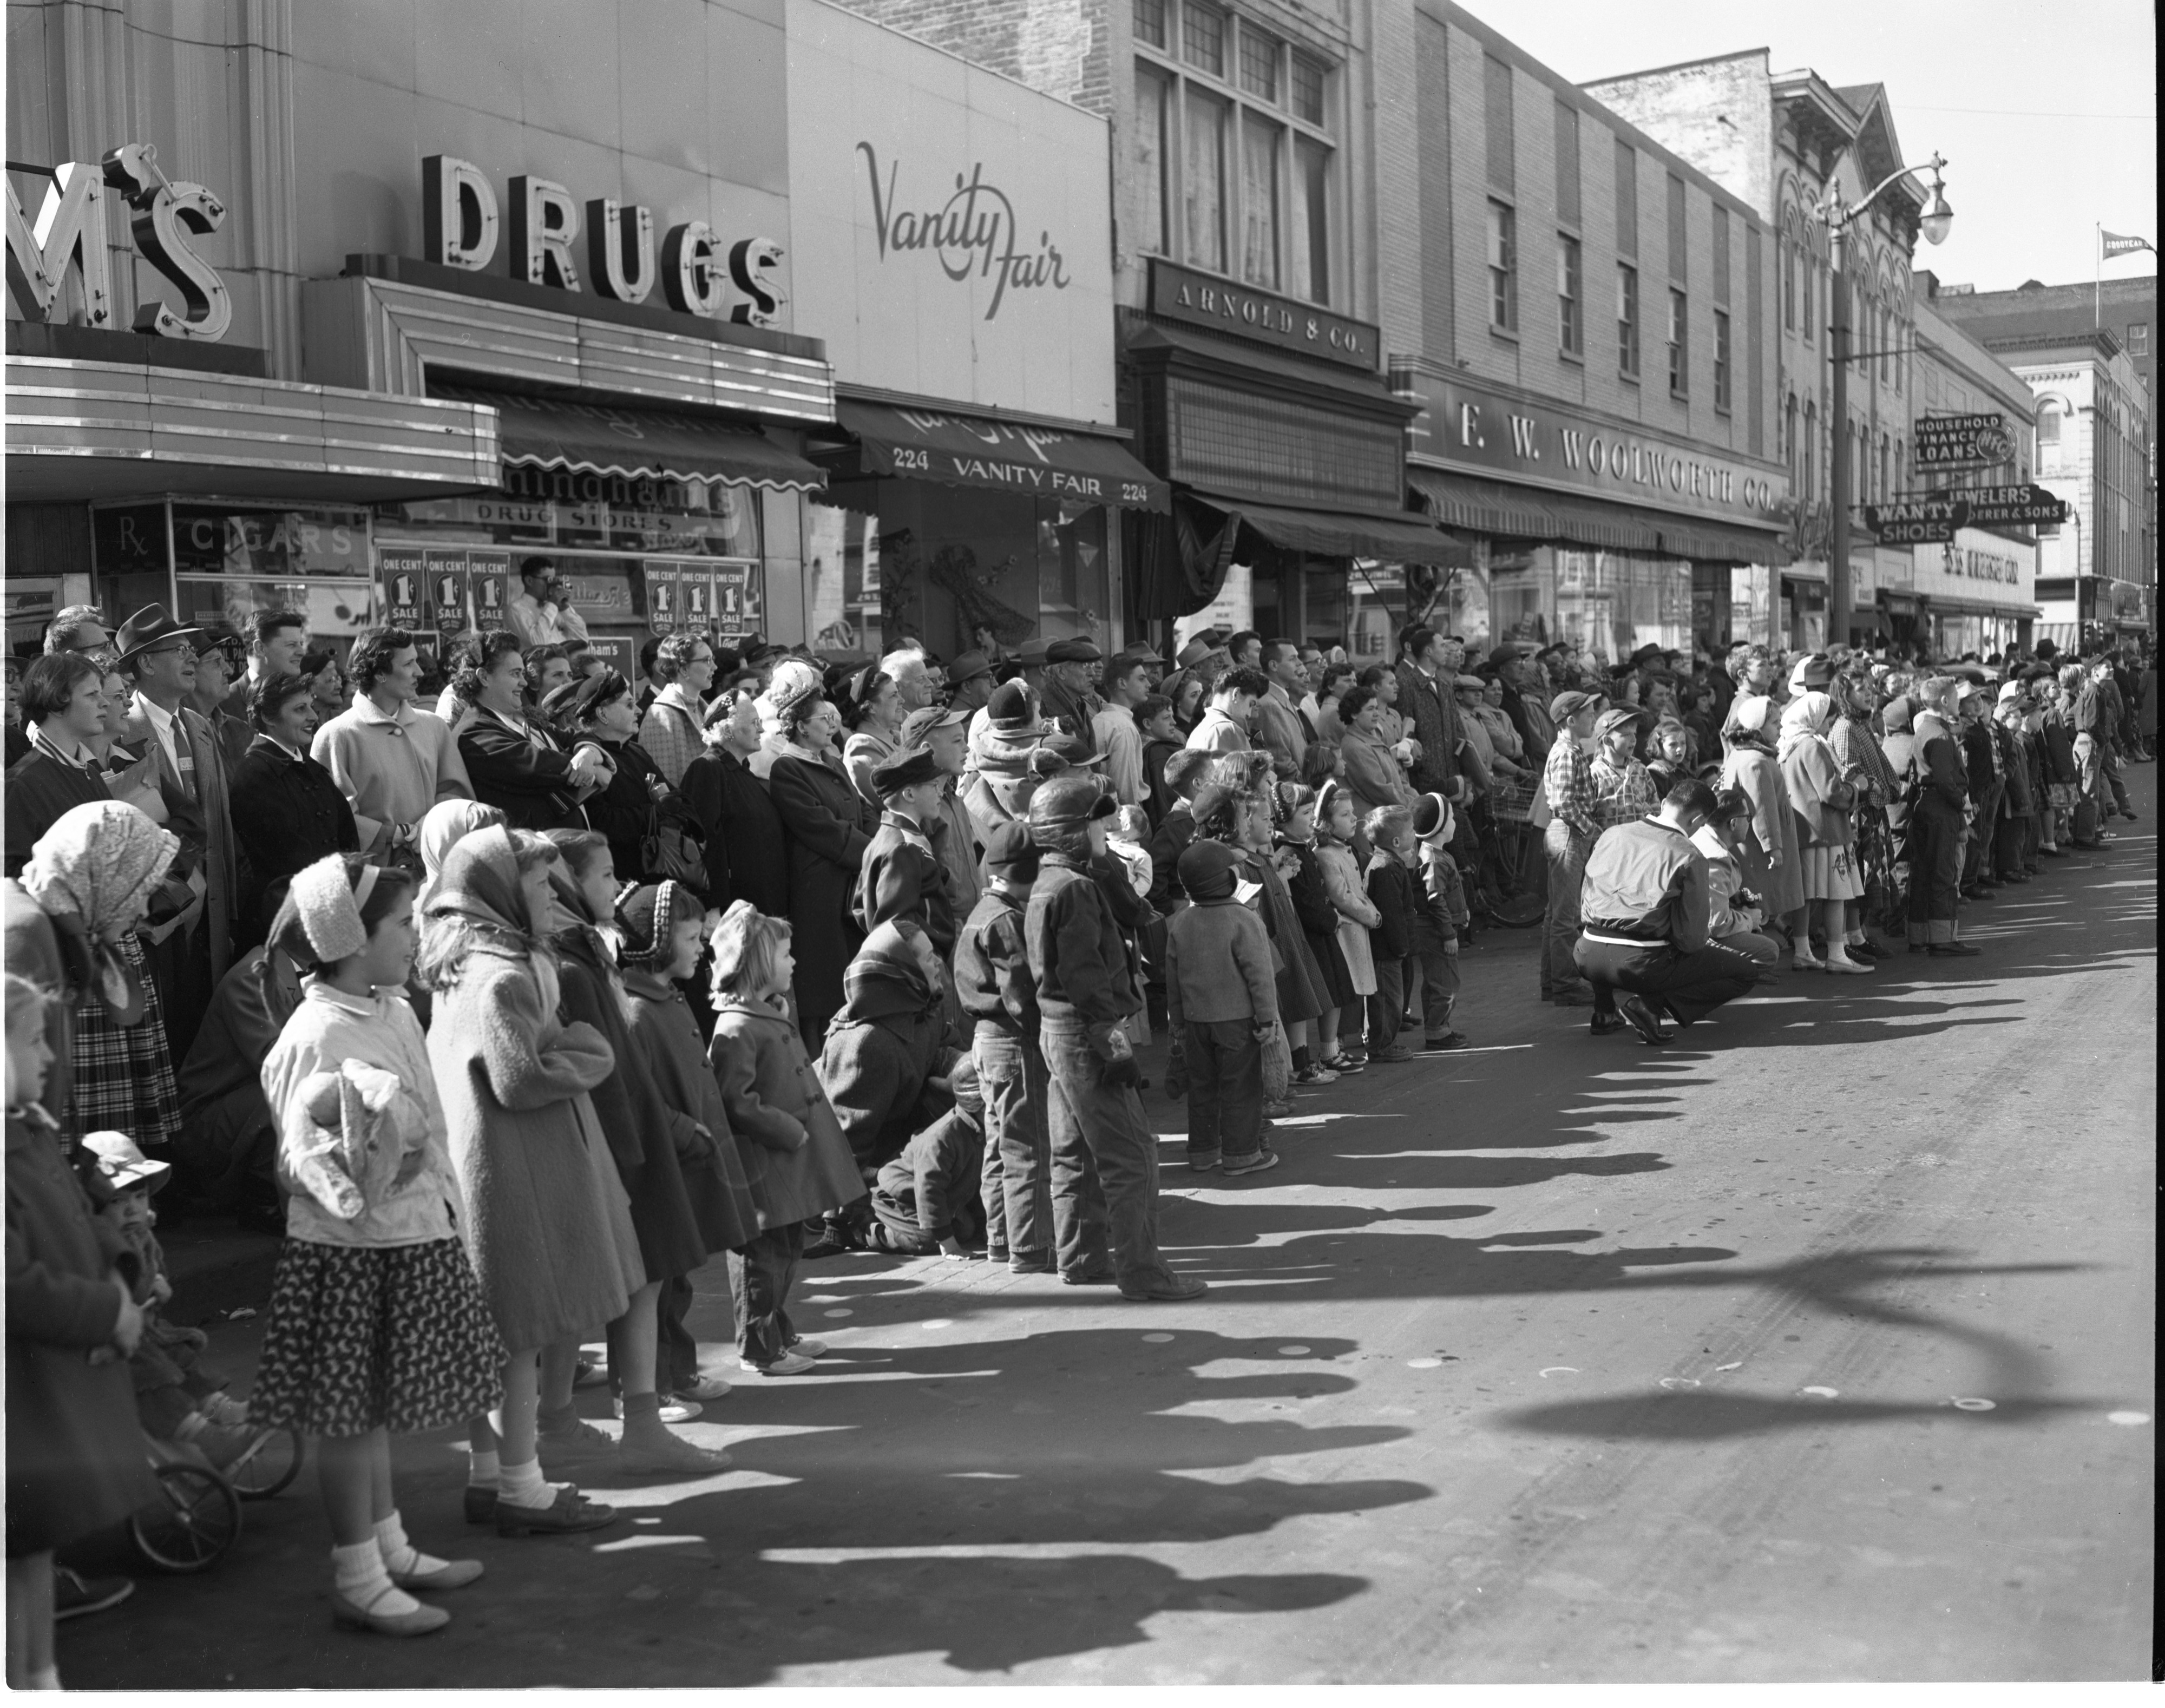 Crowds Line Main Street For The Michigras Parade, April 1956 image